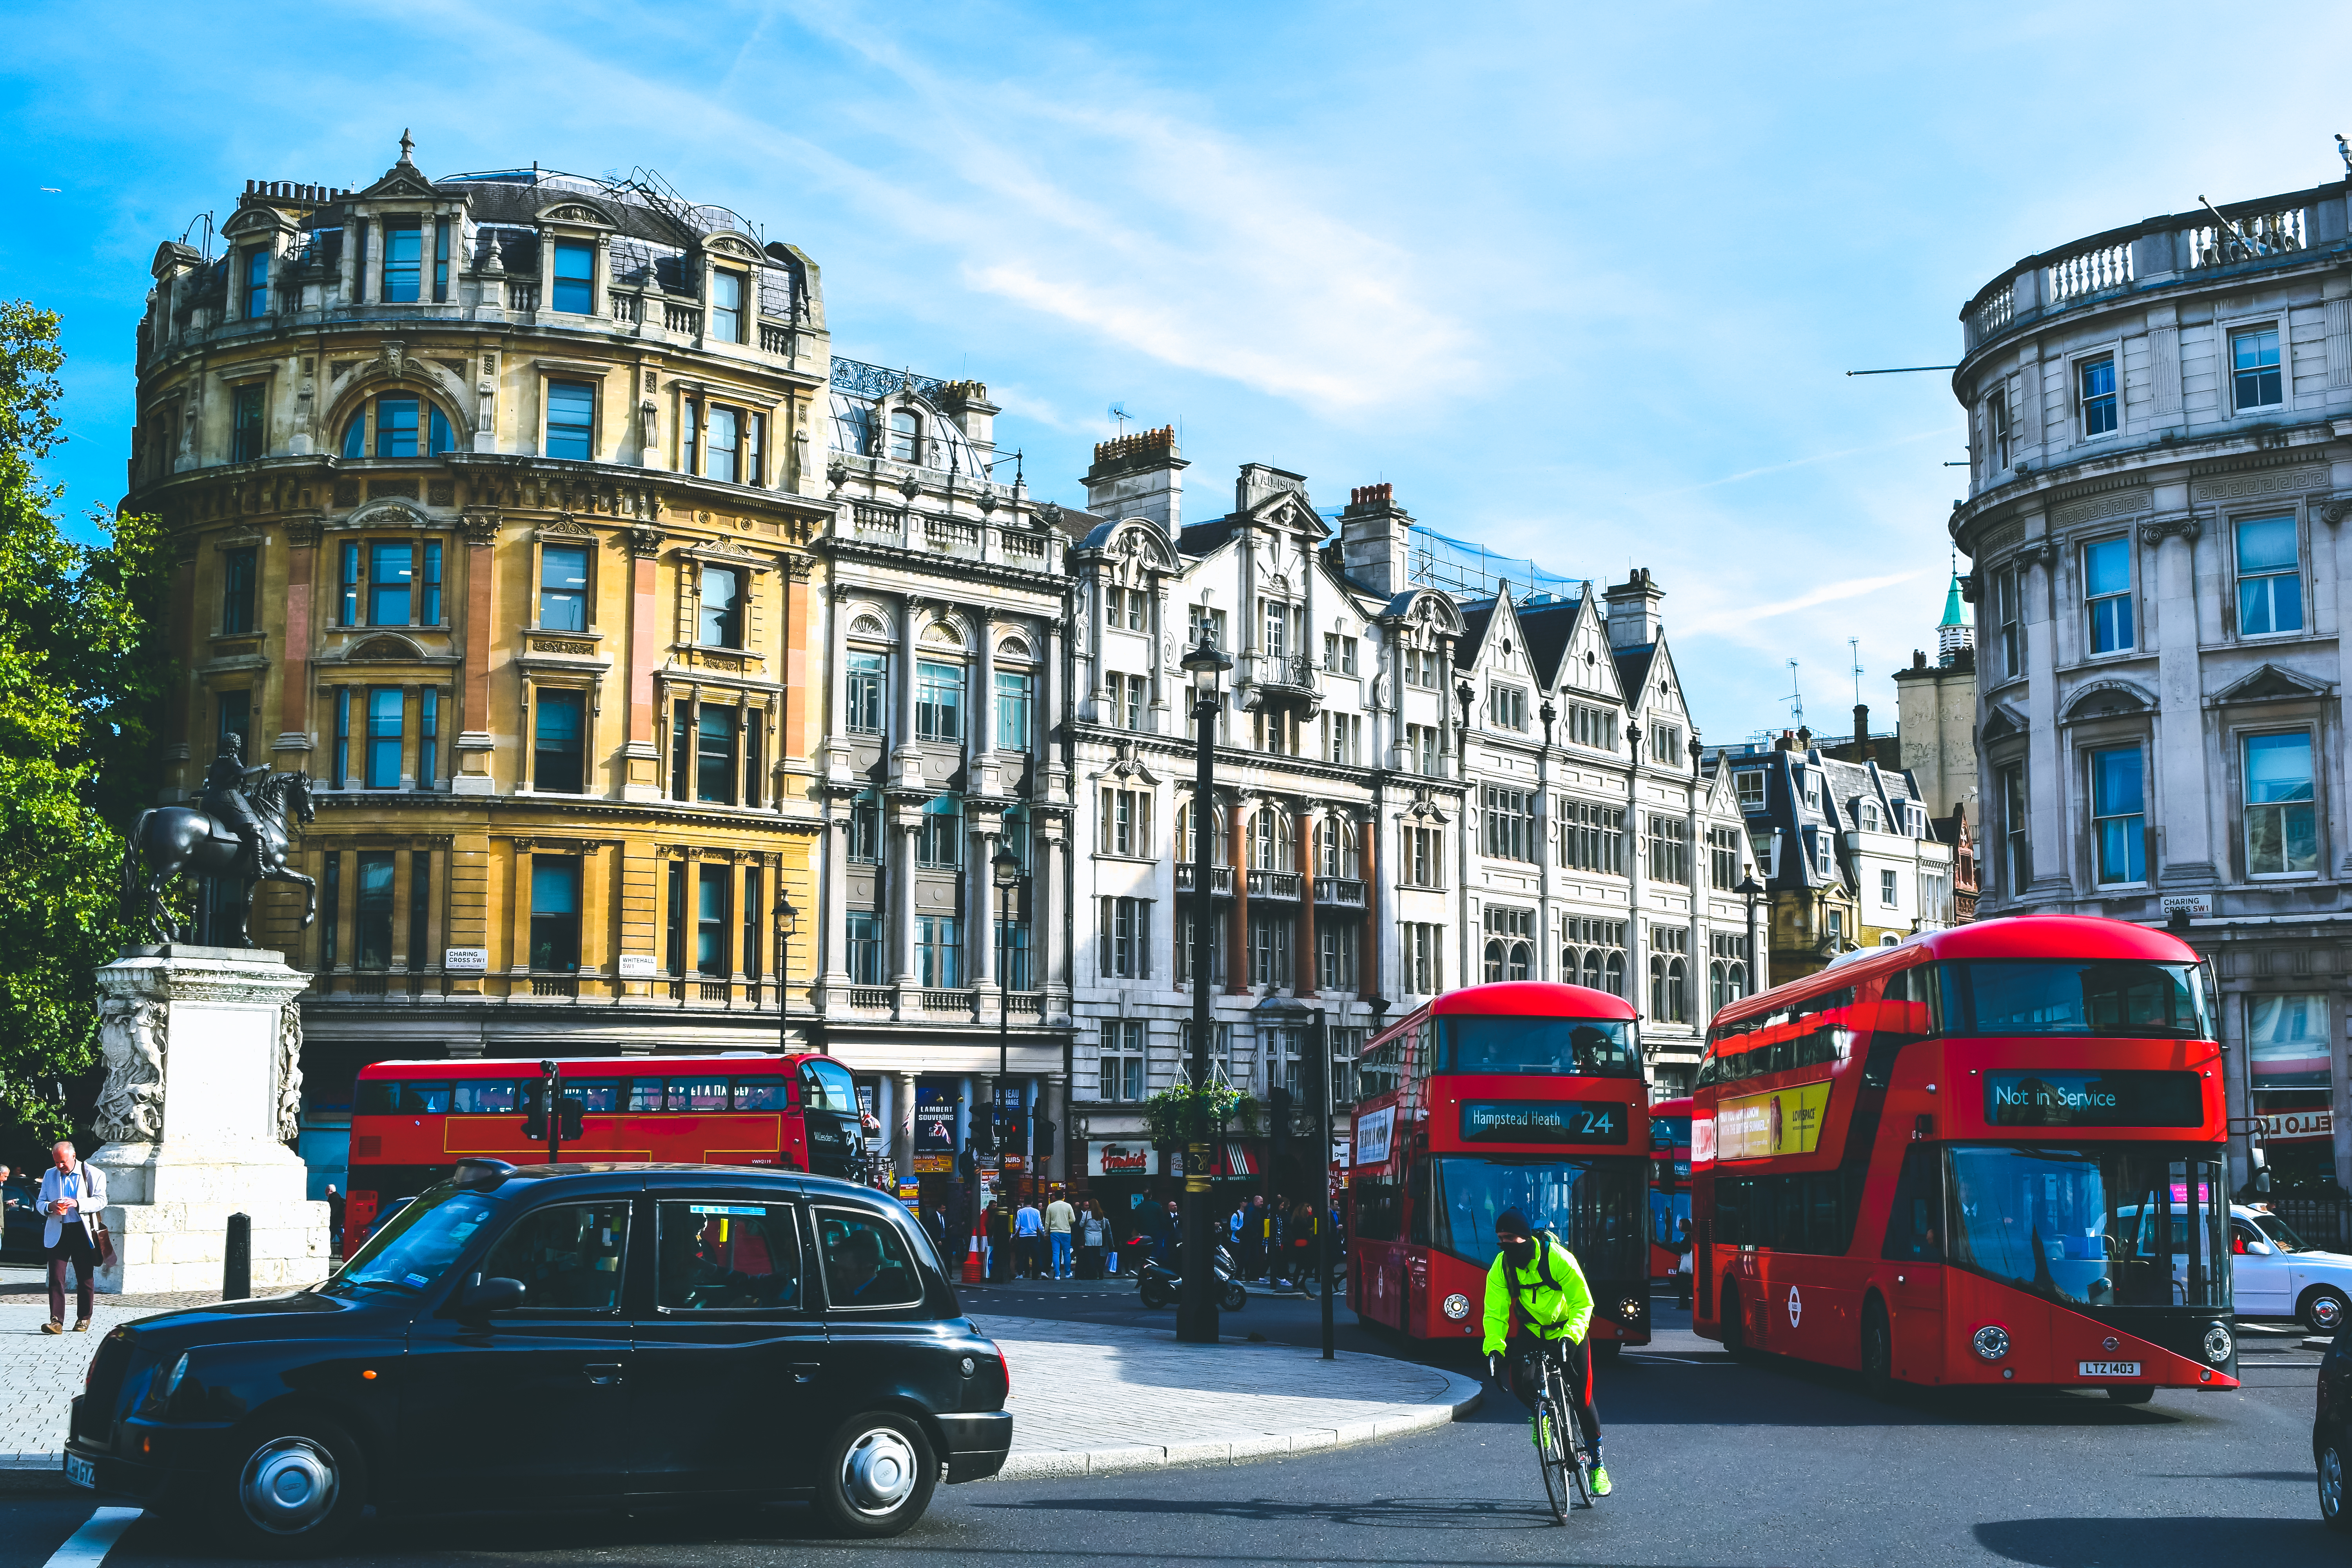 Travel guide to london uk blog what to do what to see where to go 3 days-7